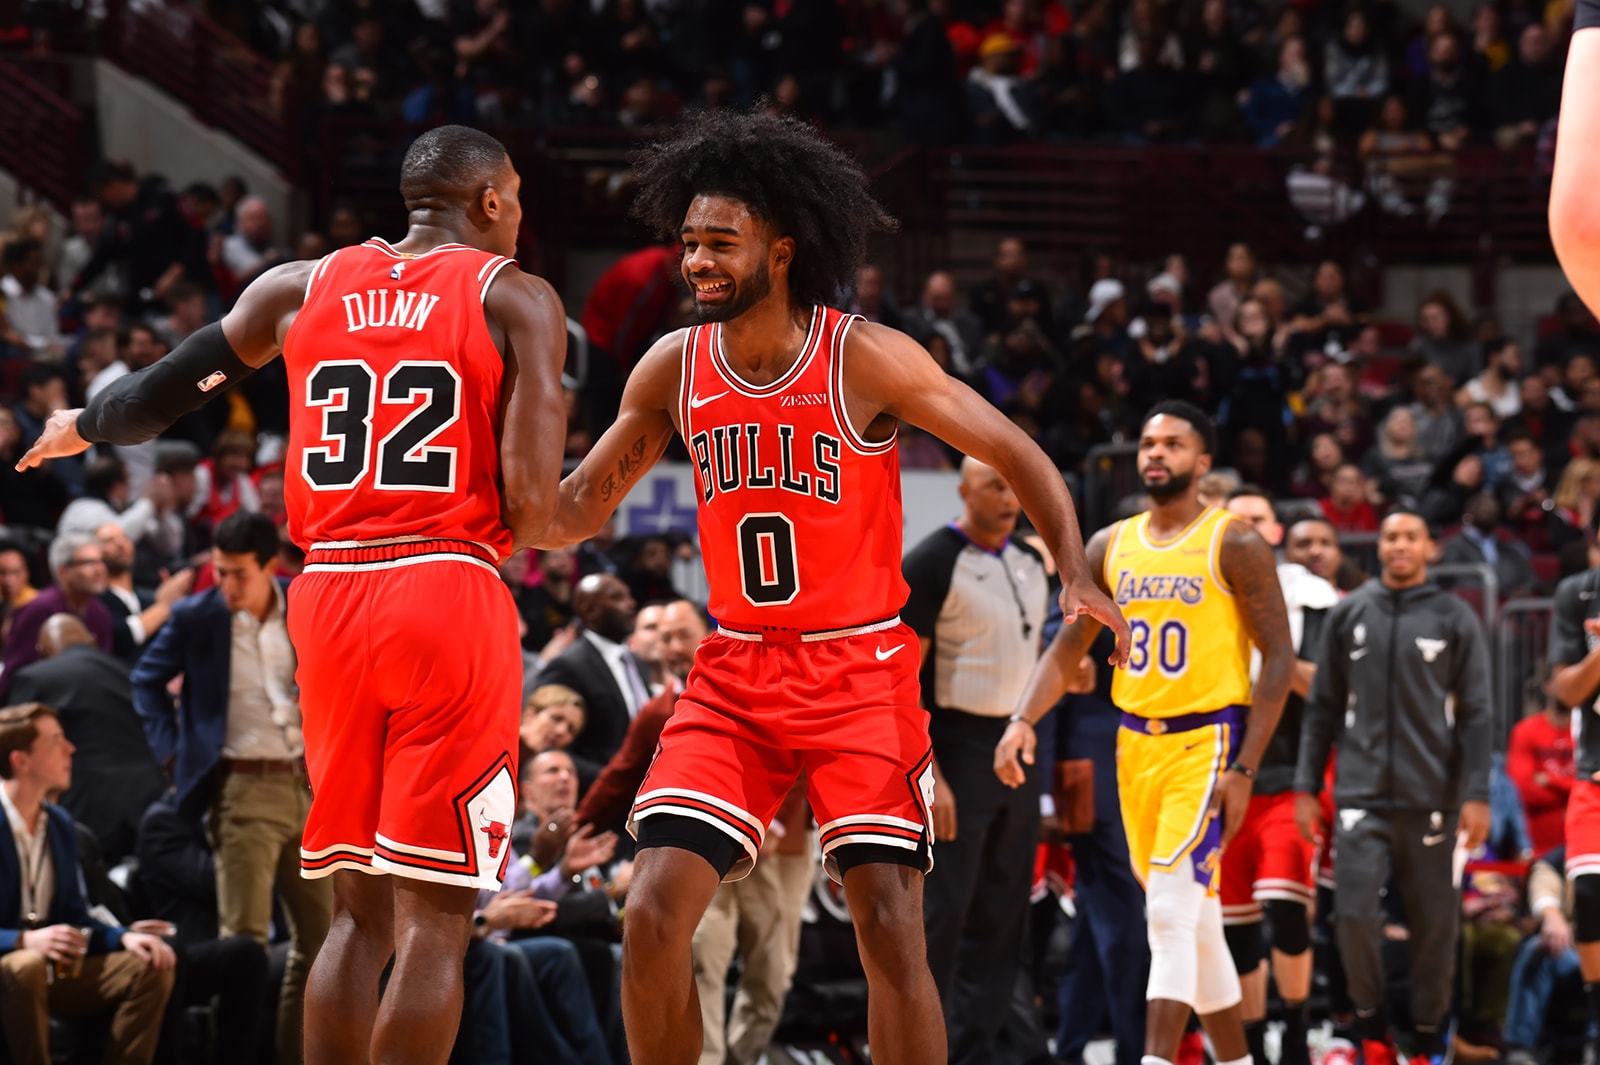 Kris Dunn & Coby White celebrate on the court